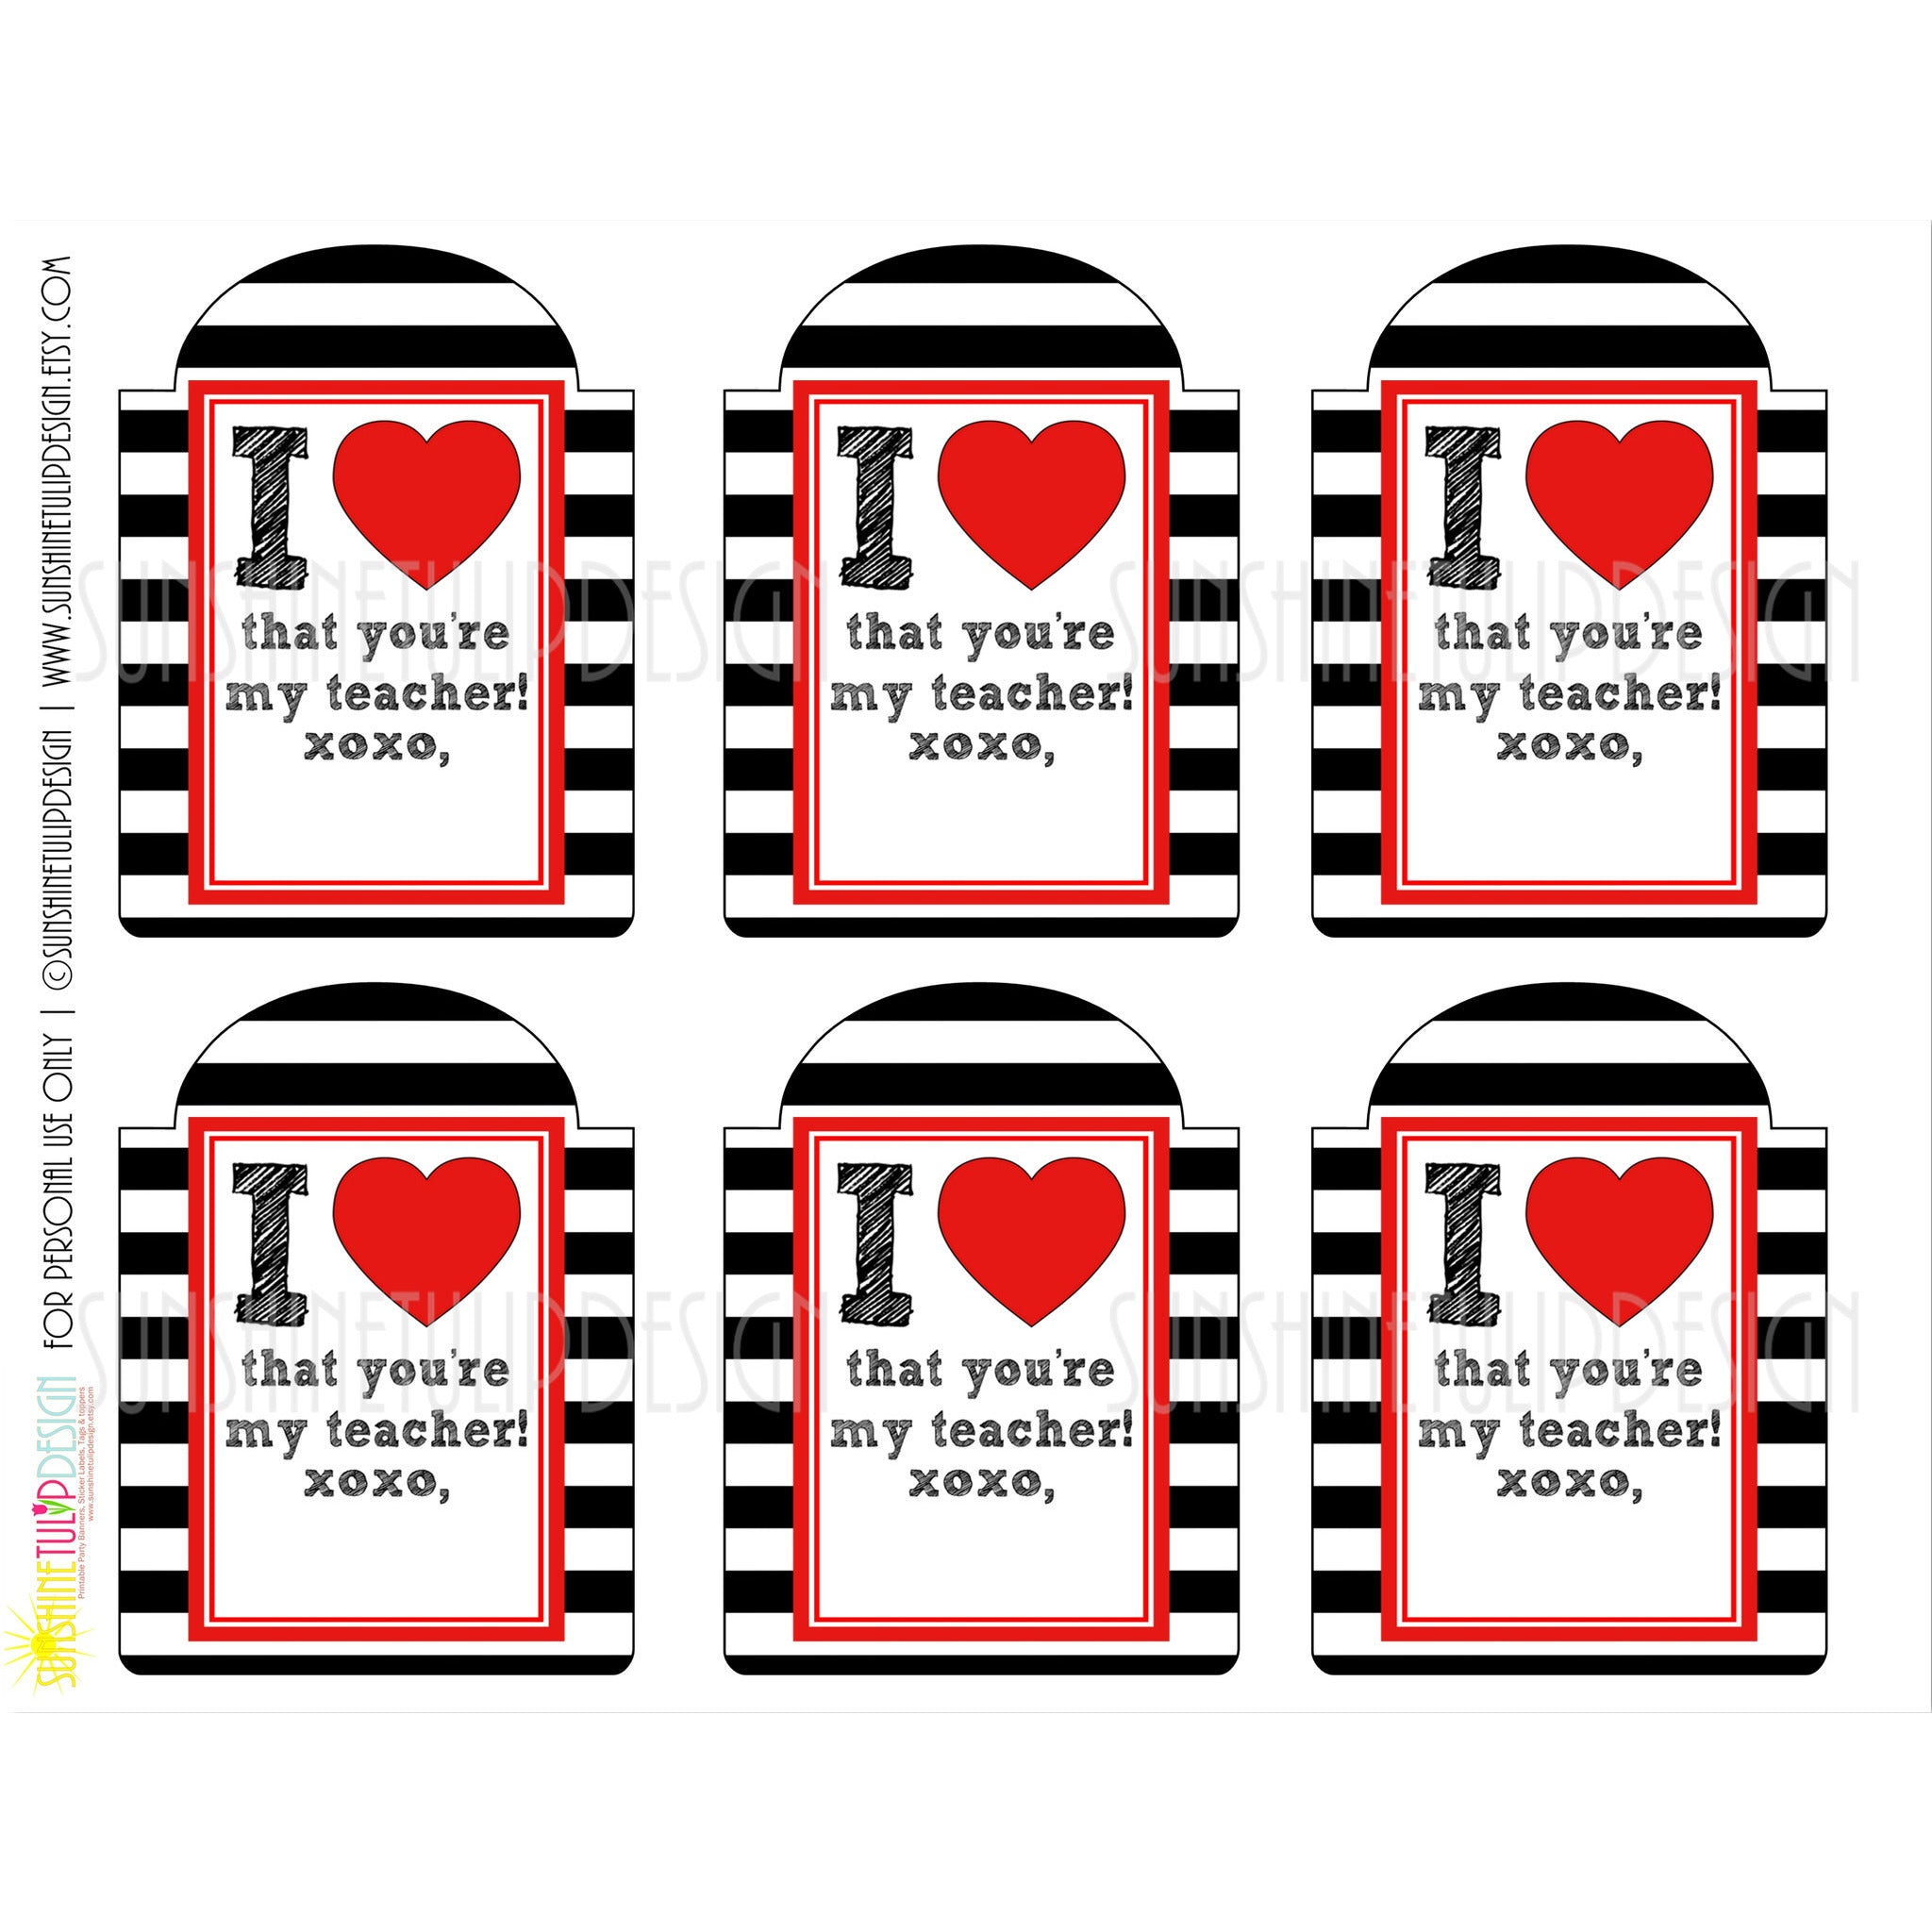 photo regarding Teacher Appreciation Tags Printable titled Printable Welcome Back again in direction of Faculty Tags, Printable Instructor Appreciation Present Tags, Instructor Xmas Reward Tags via SUNSHINETULIPDESIGN